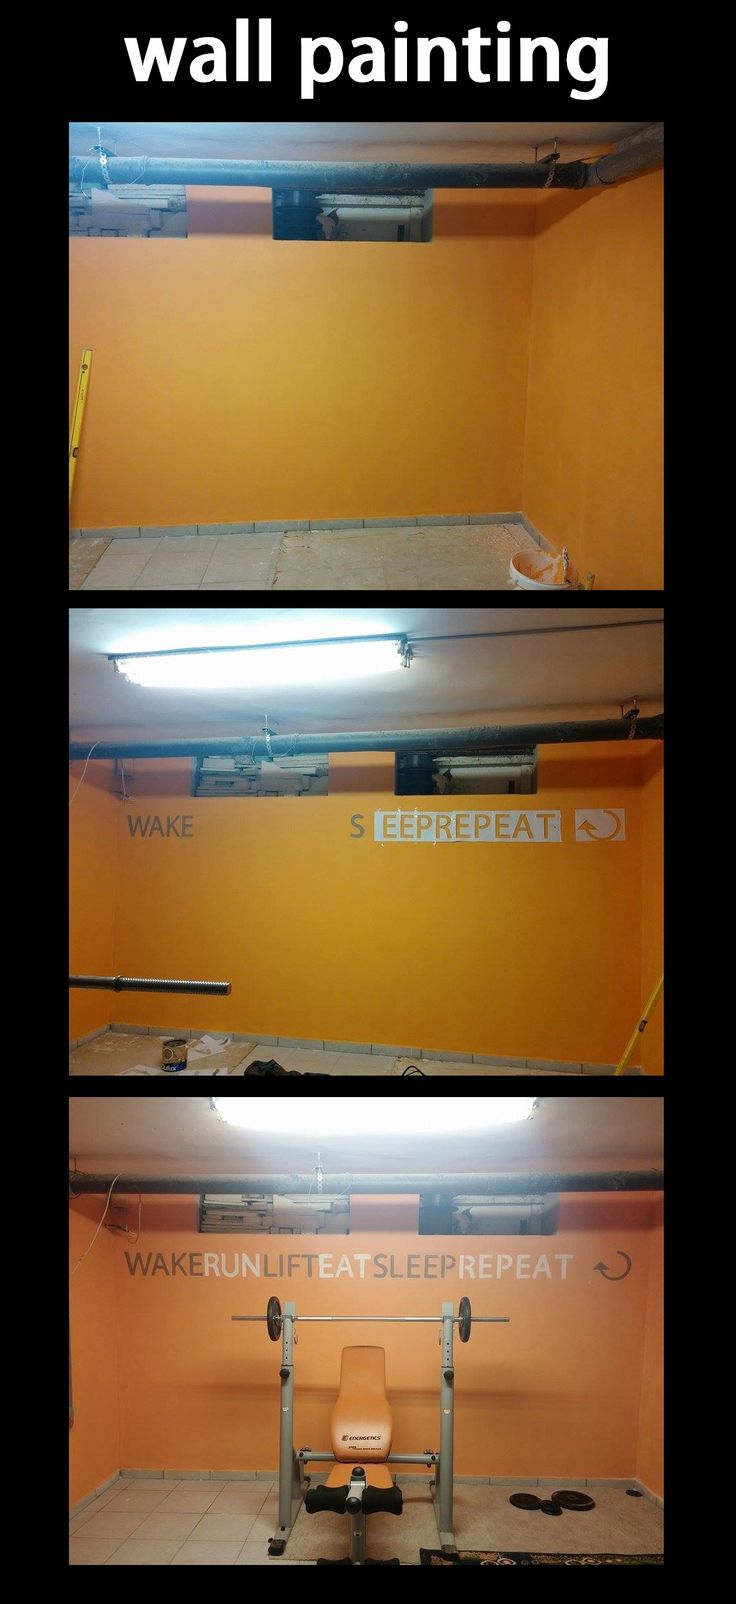 Motivation wall painting for fitness :)